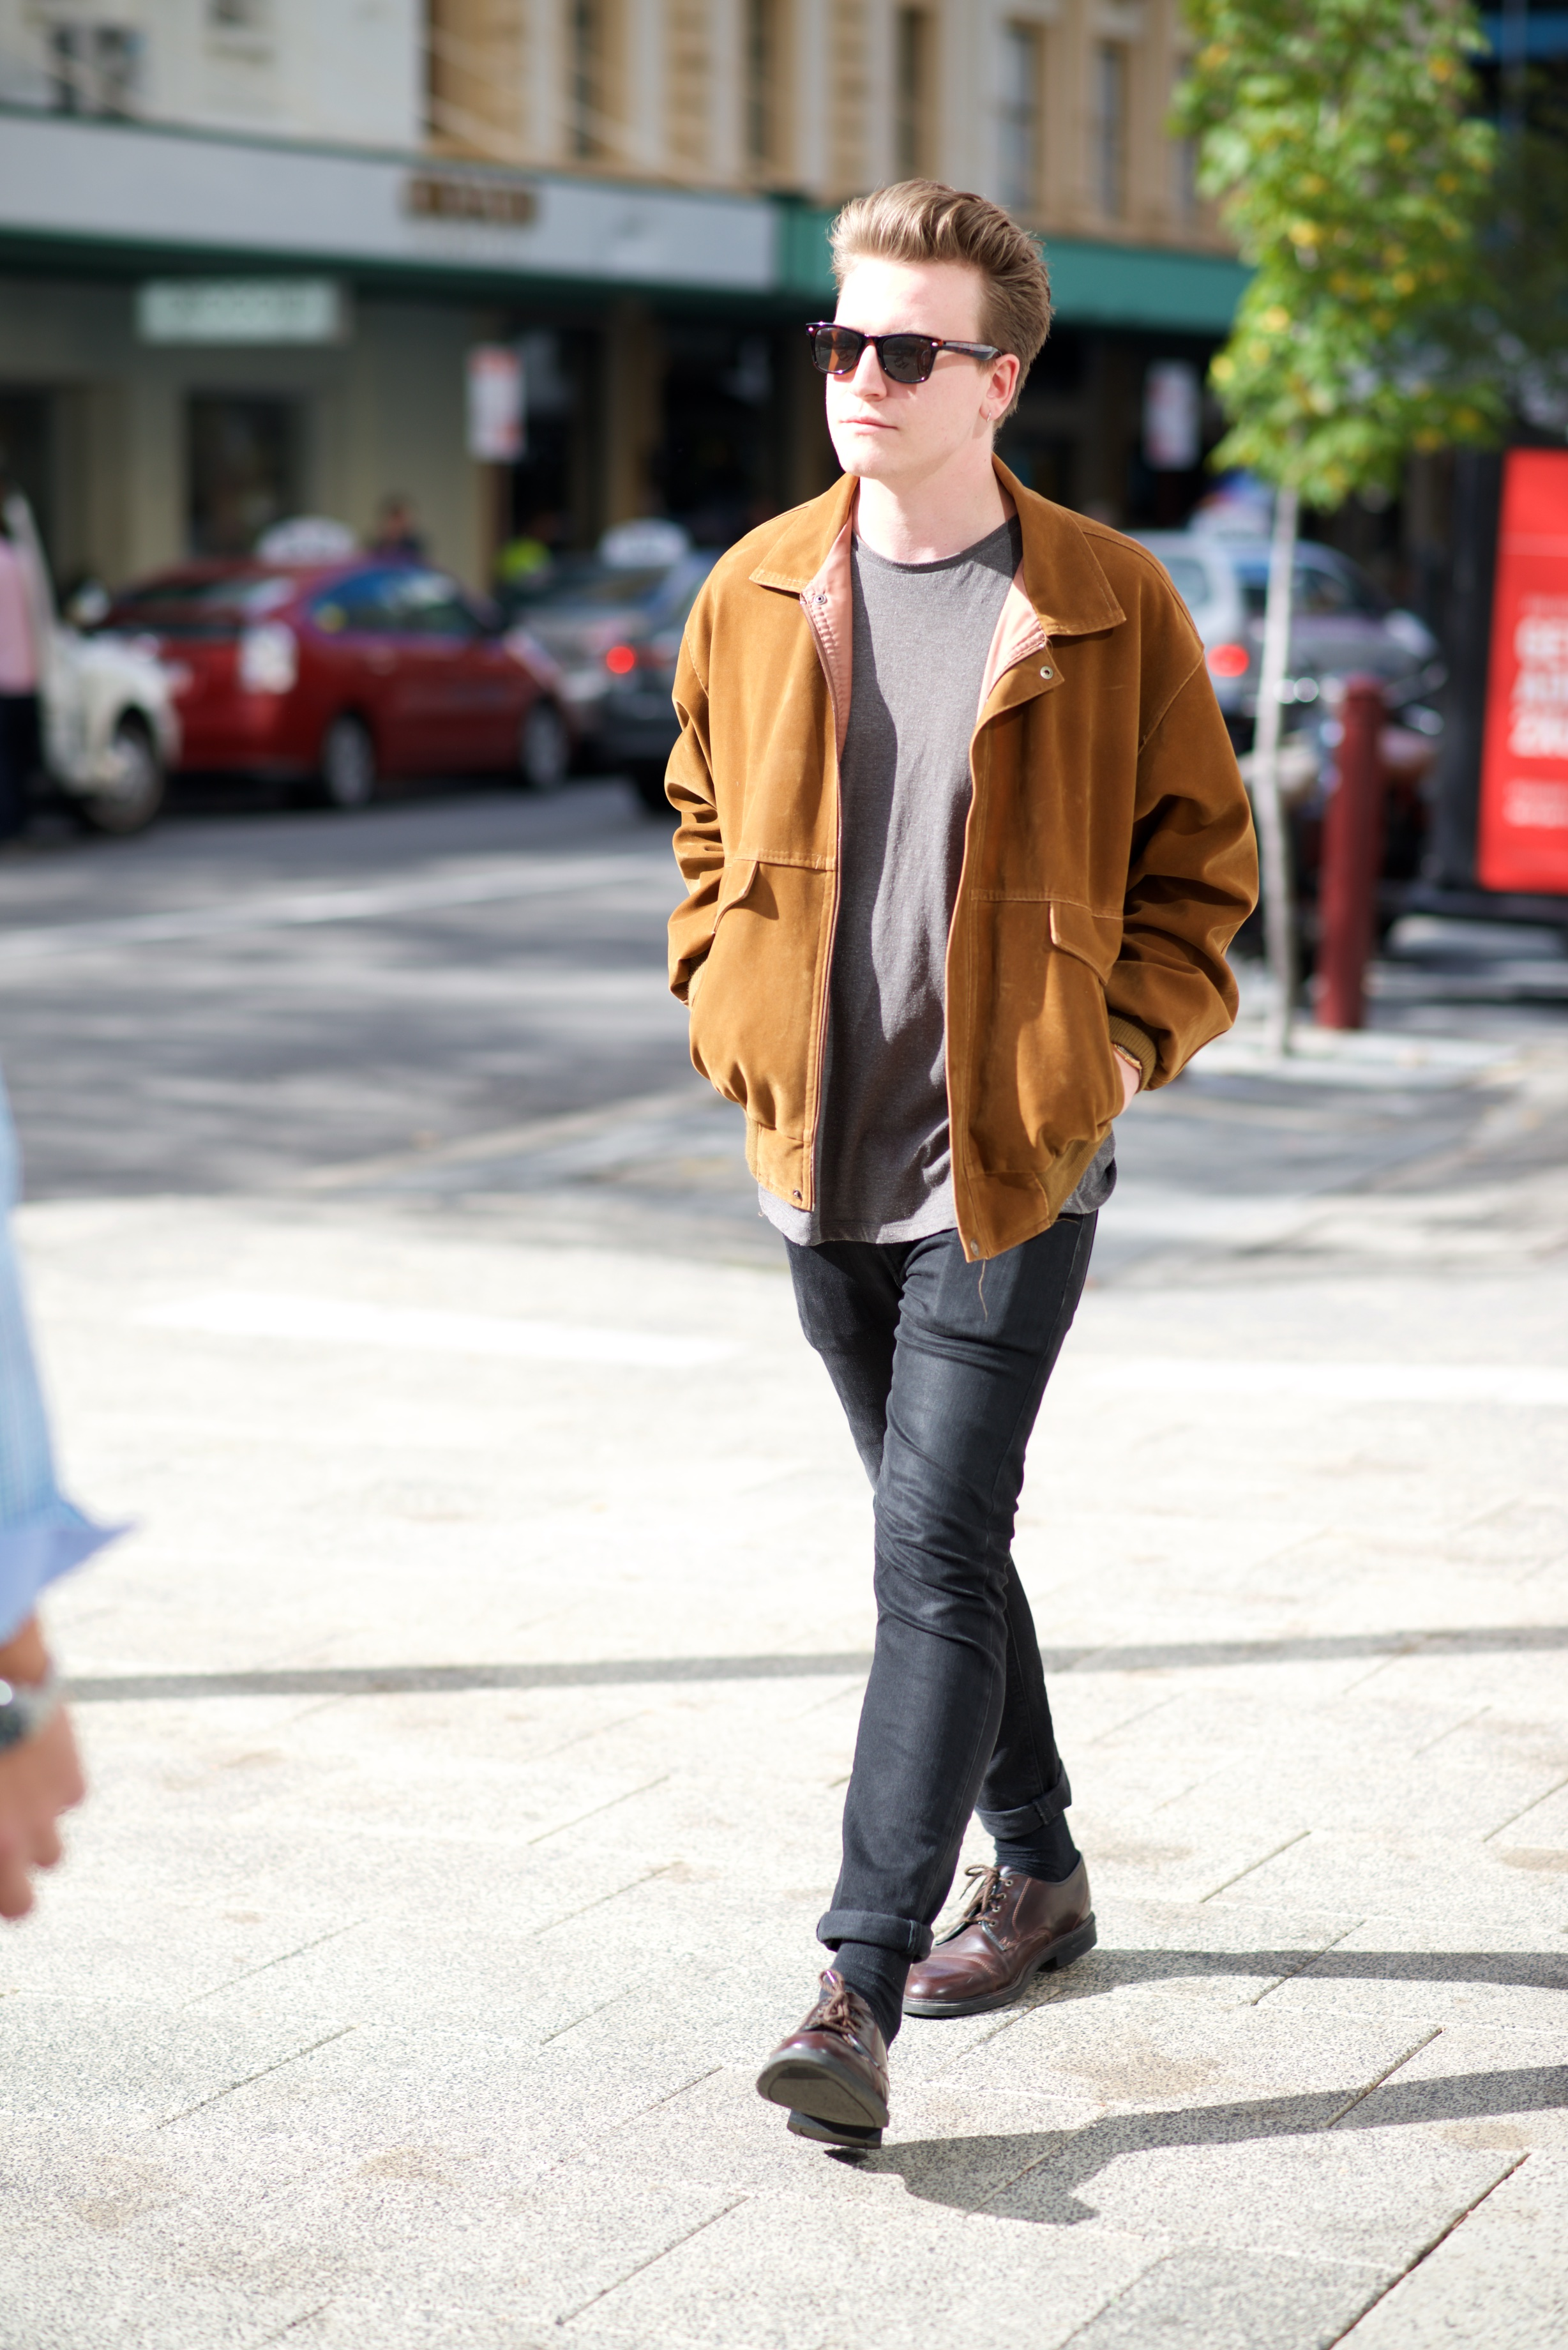 "WA: Ben Pearce, recruiter,  Perth city. ""I'd say my style's Springsteen Chic"". Photo: Alan Wu"